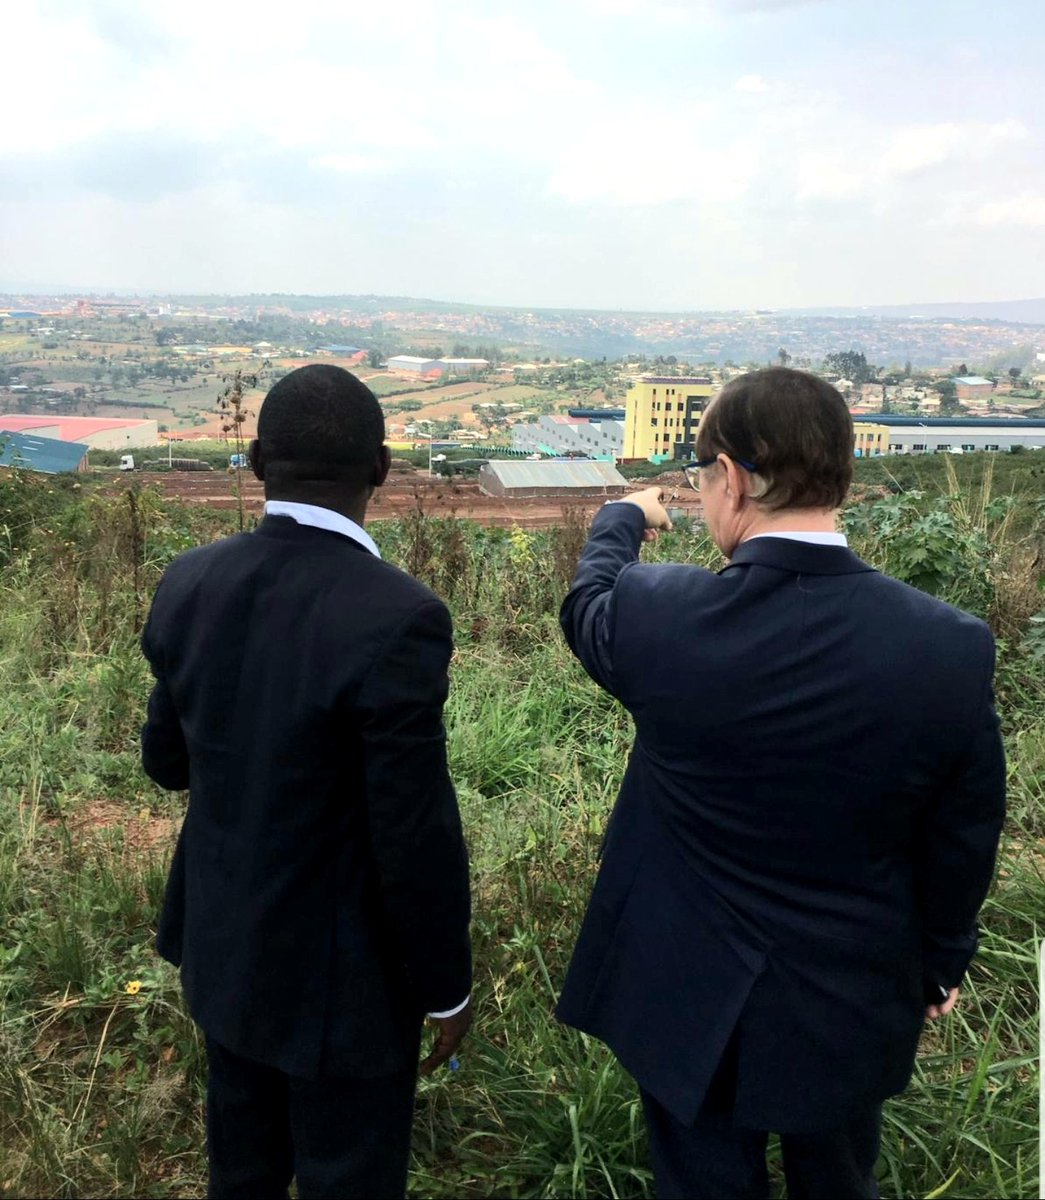 We had another great week, in which I visited the Kigali Special Economic Zone, a heartbeat of Rwanda's economic development, and had an opportunity to meet with international companies such as @yara and @VWRwanda. Hope to see Israeli companies here soon. Thank you @RDBrwanda